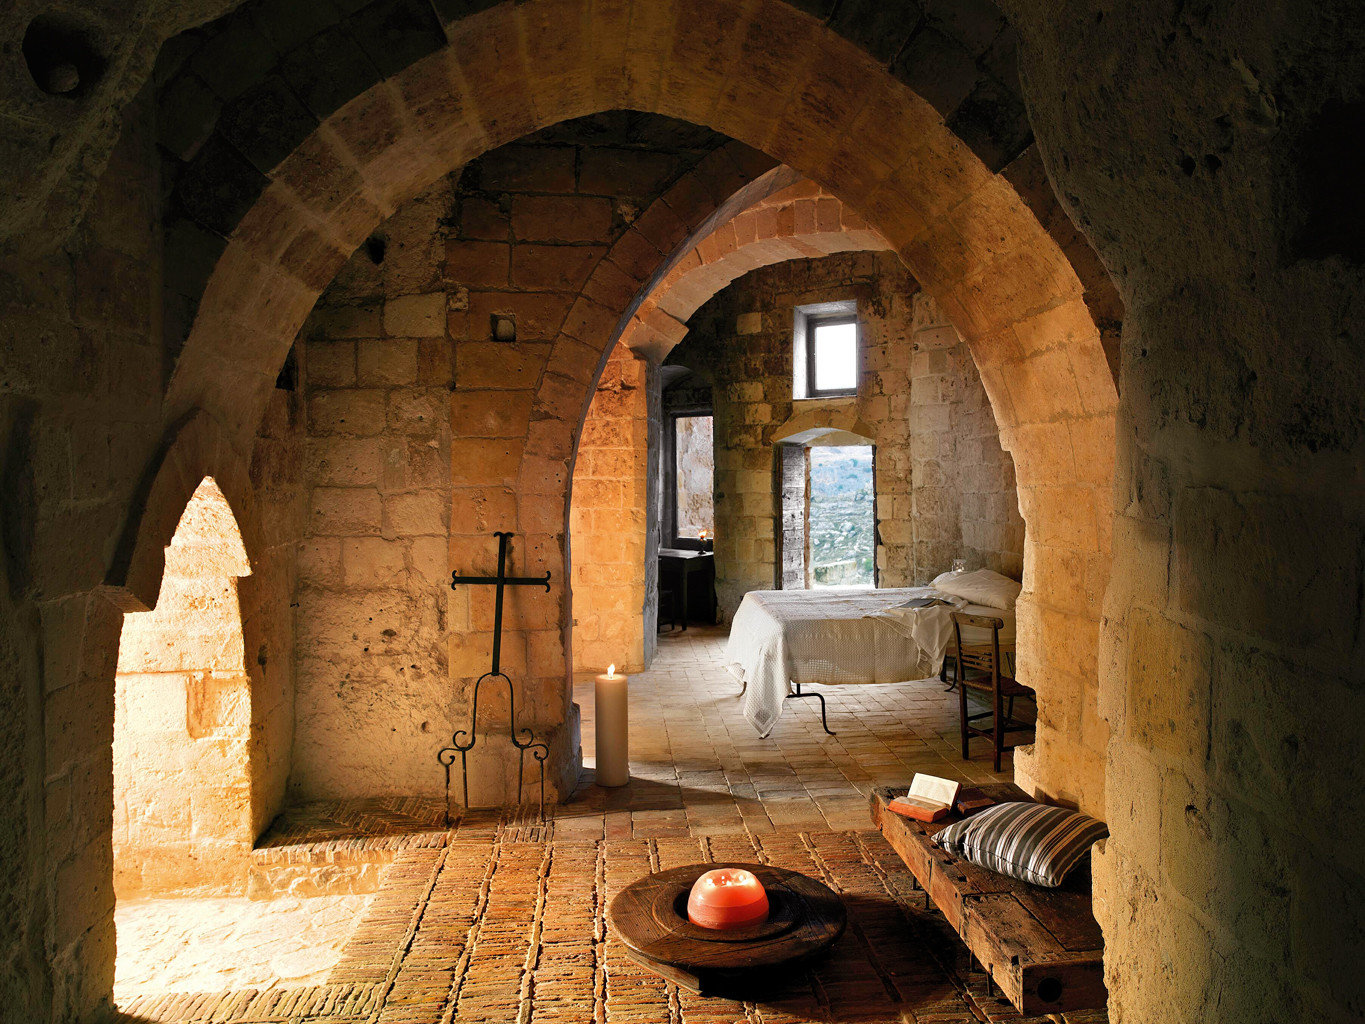 B&B Bedroom Boutique Country Historic Romance Romantic Trip Ideas building stone brick arch wall Architecture ancient history estate crypt hacienda middle ages temple monastery vault basement